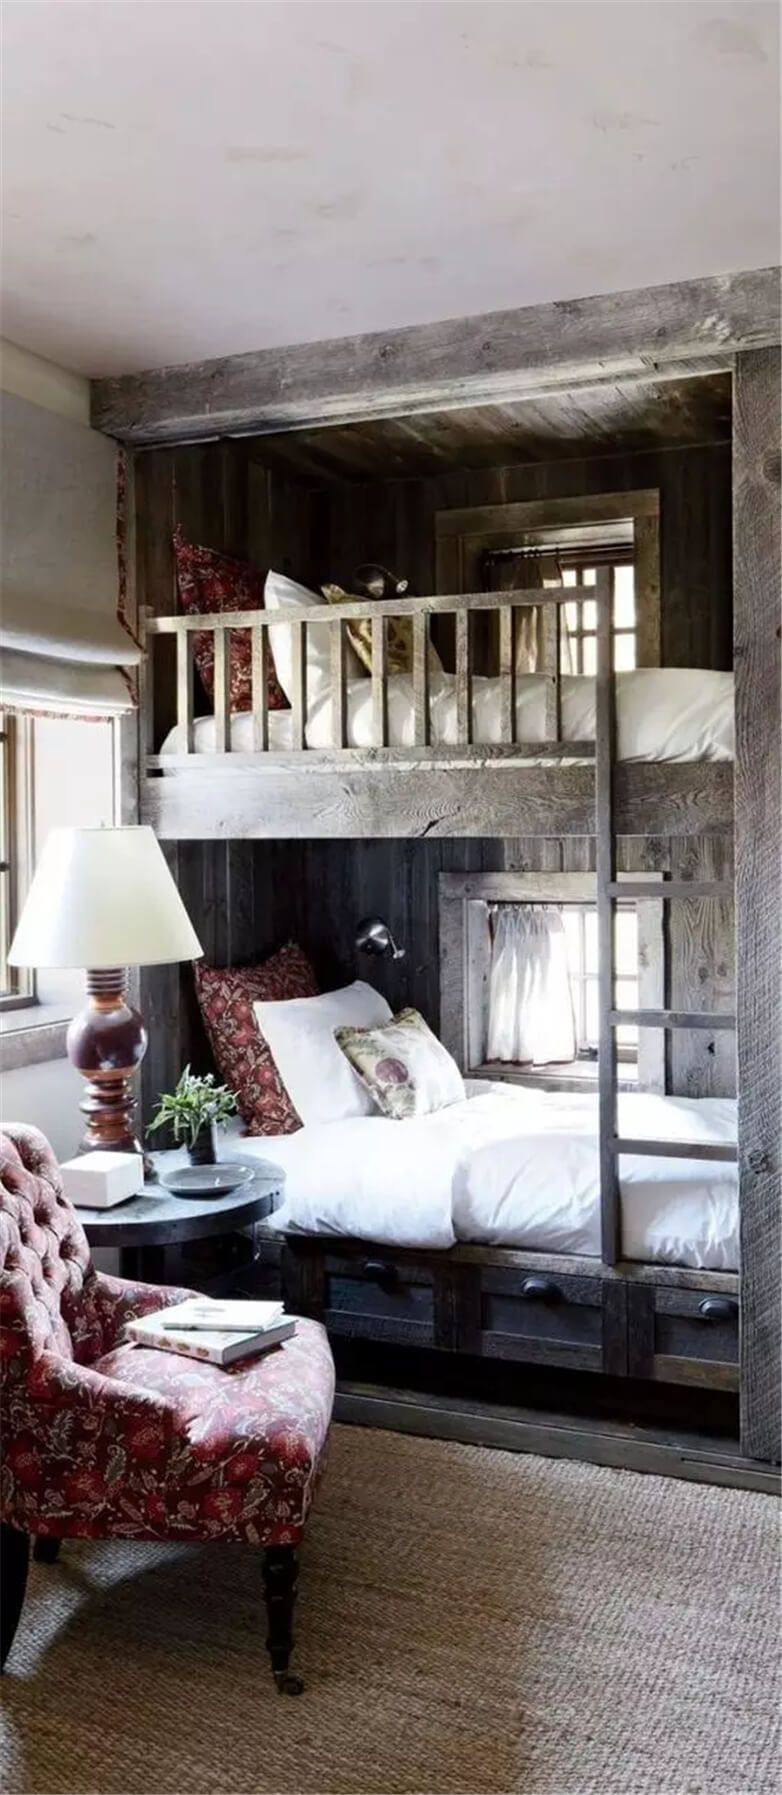 Bunk Beds with a Chair for Reading – a chair like this in the bedroom reading co…